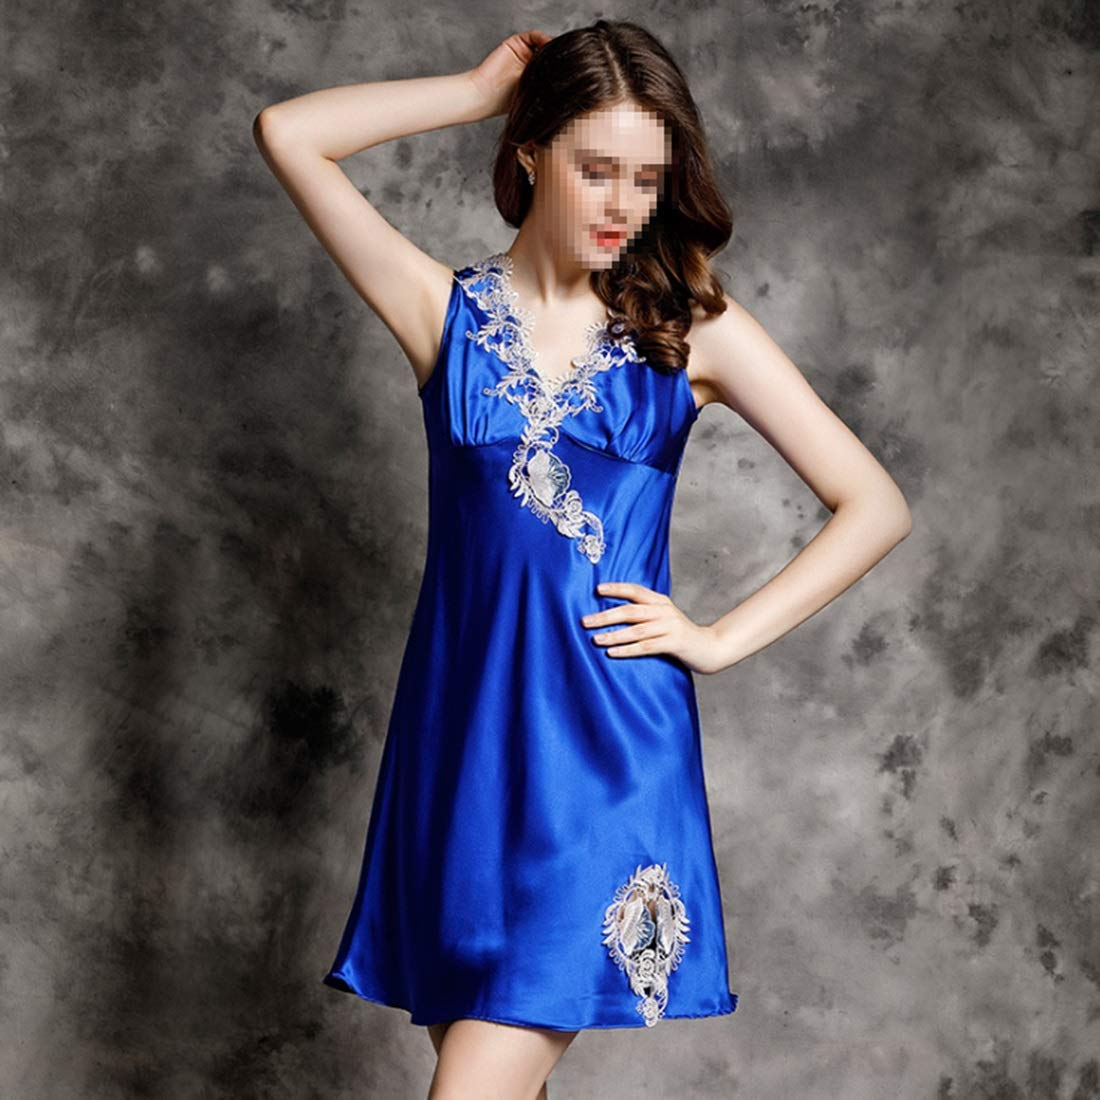 2 Vfdsvbdv Sexy Silk Pajamas Ladies Nightdress 100% Silk Lace Casual Home Service (color   01, Size   L)